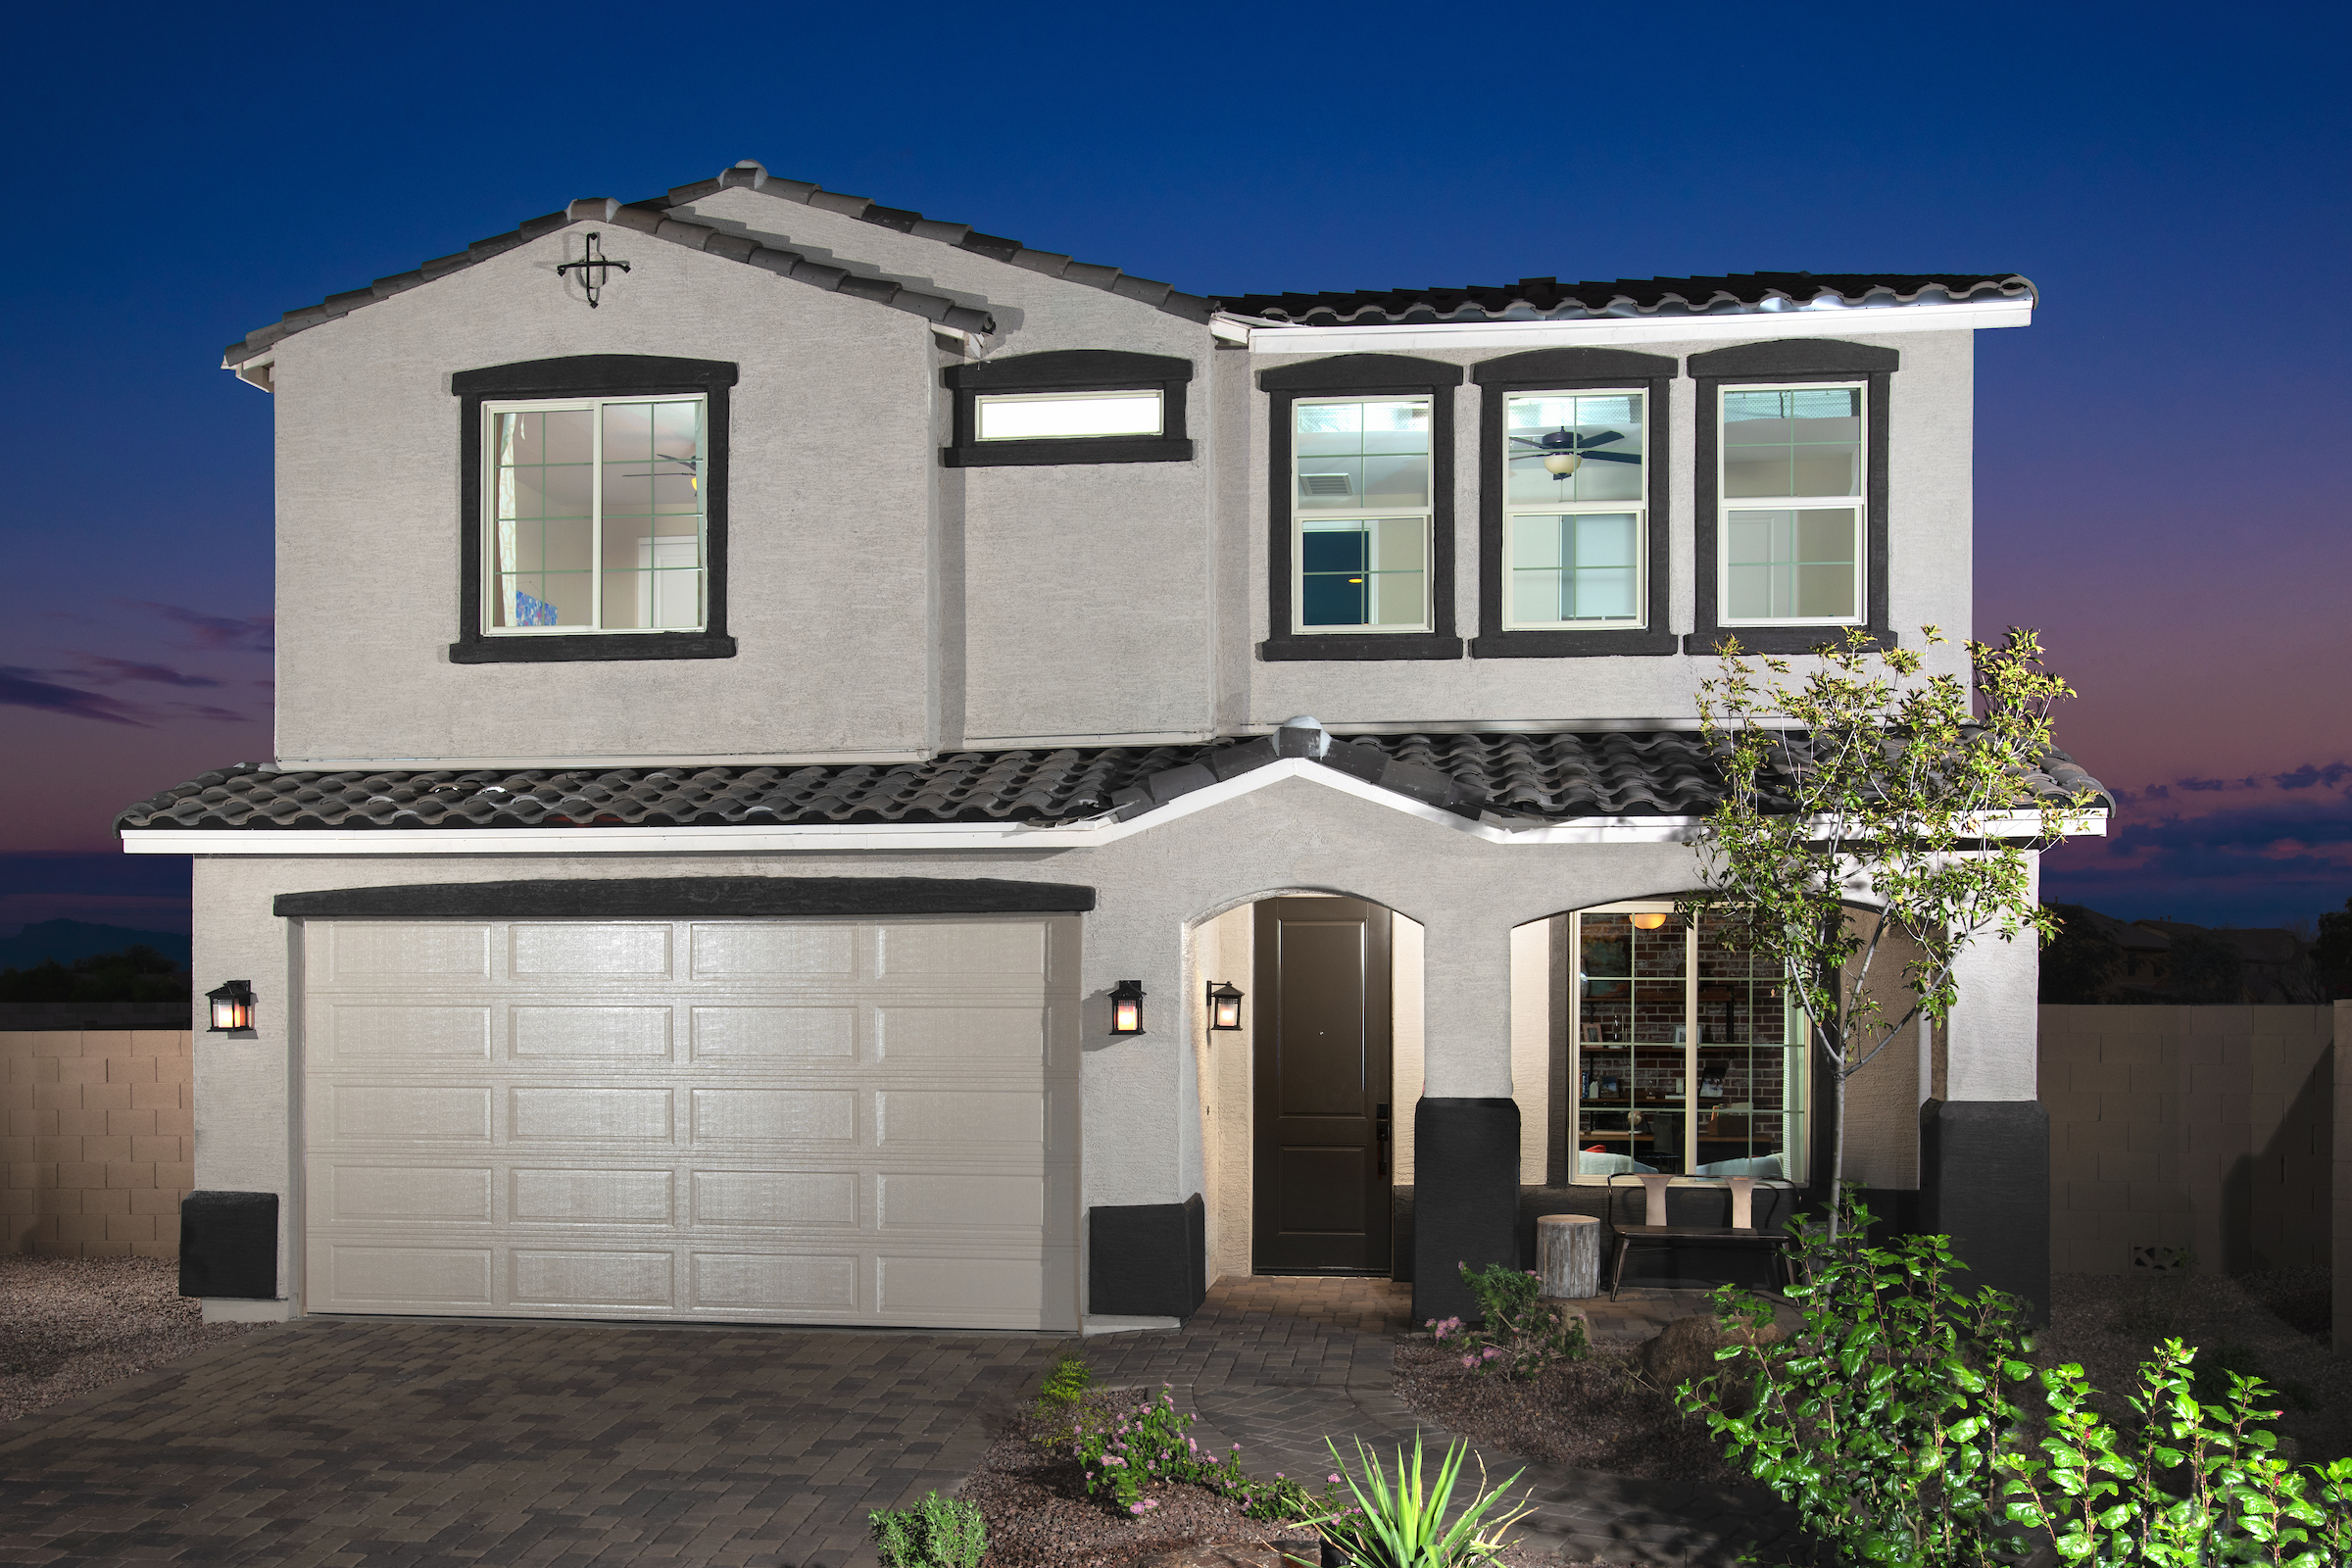 Garage Door Repair Queen Creek Az Morning Sun Farms Beazer Homes